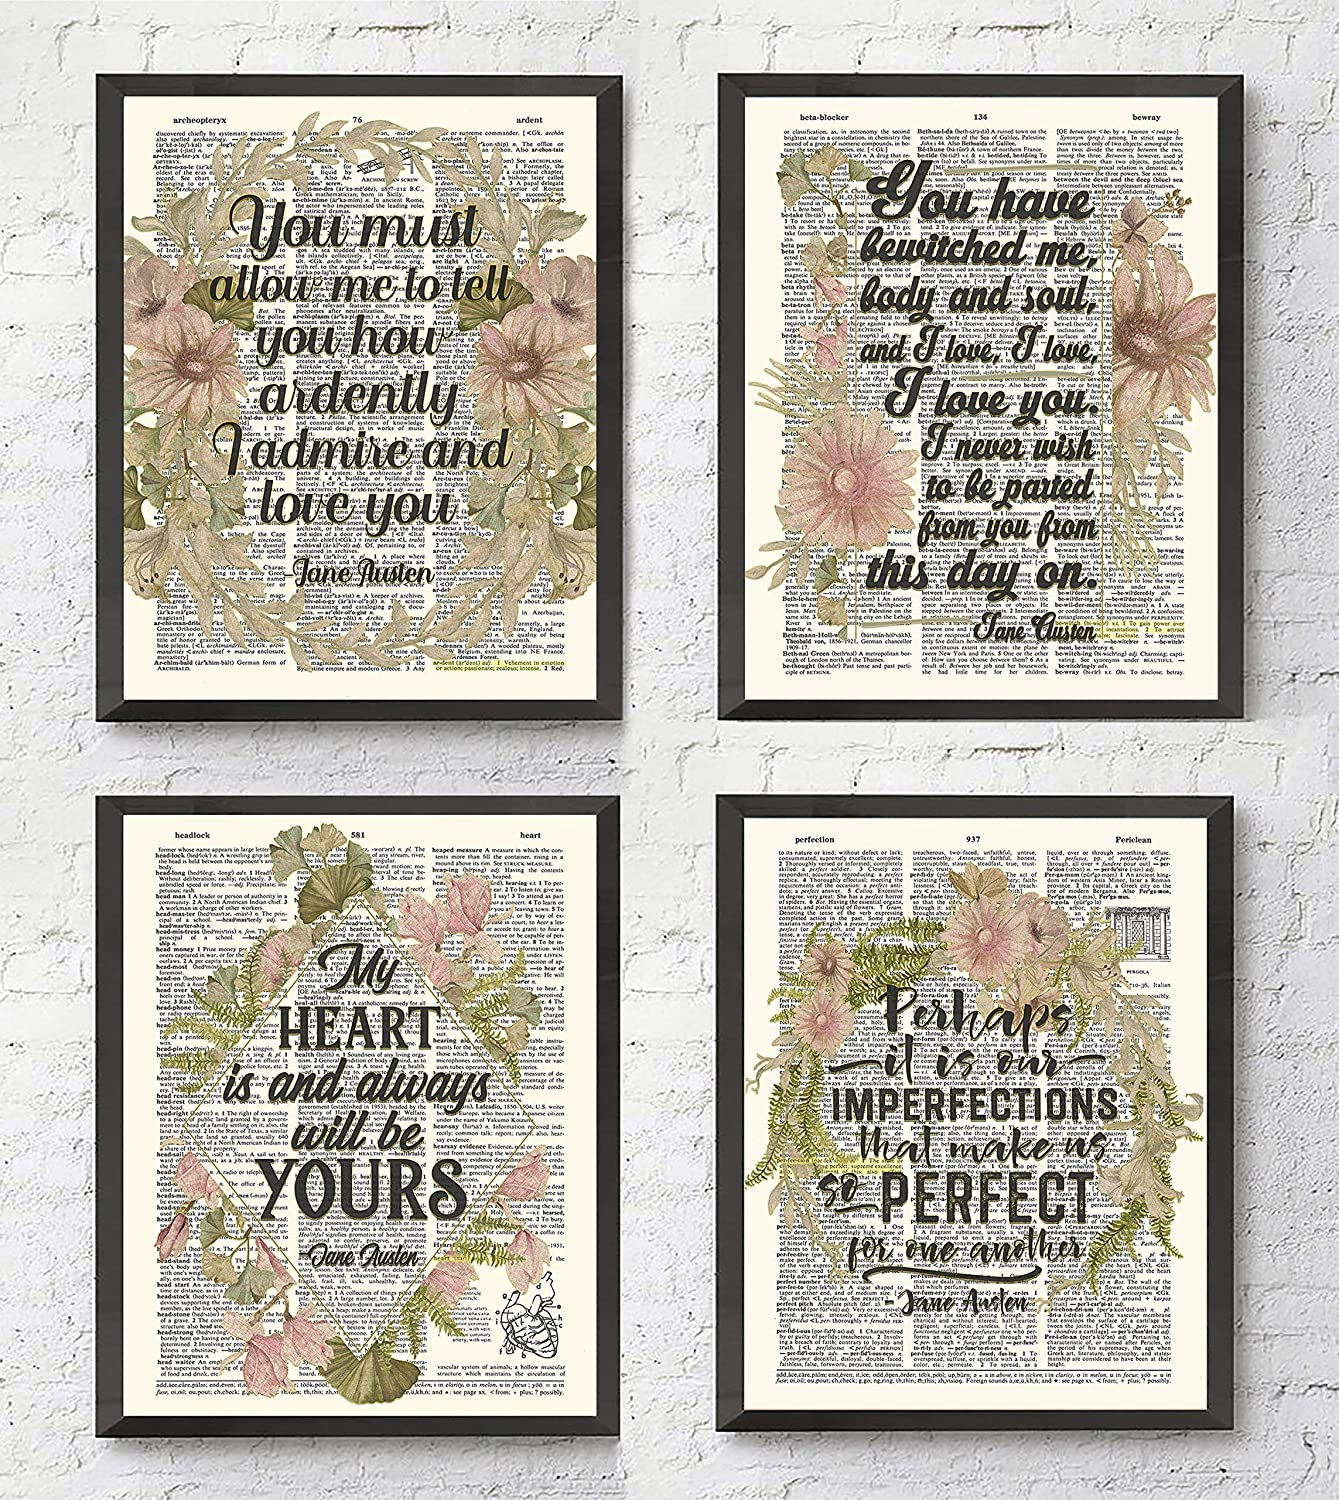 Jane Austen Quote Wall Art Prints, Set of 4, Unframed, Vintage Highlighted Dictionary Page floral Wall Art Decor Poster Sign, 8x10